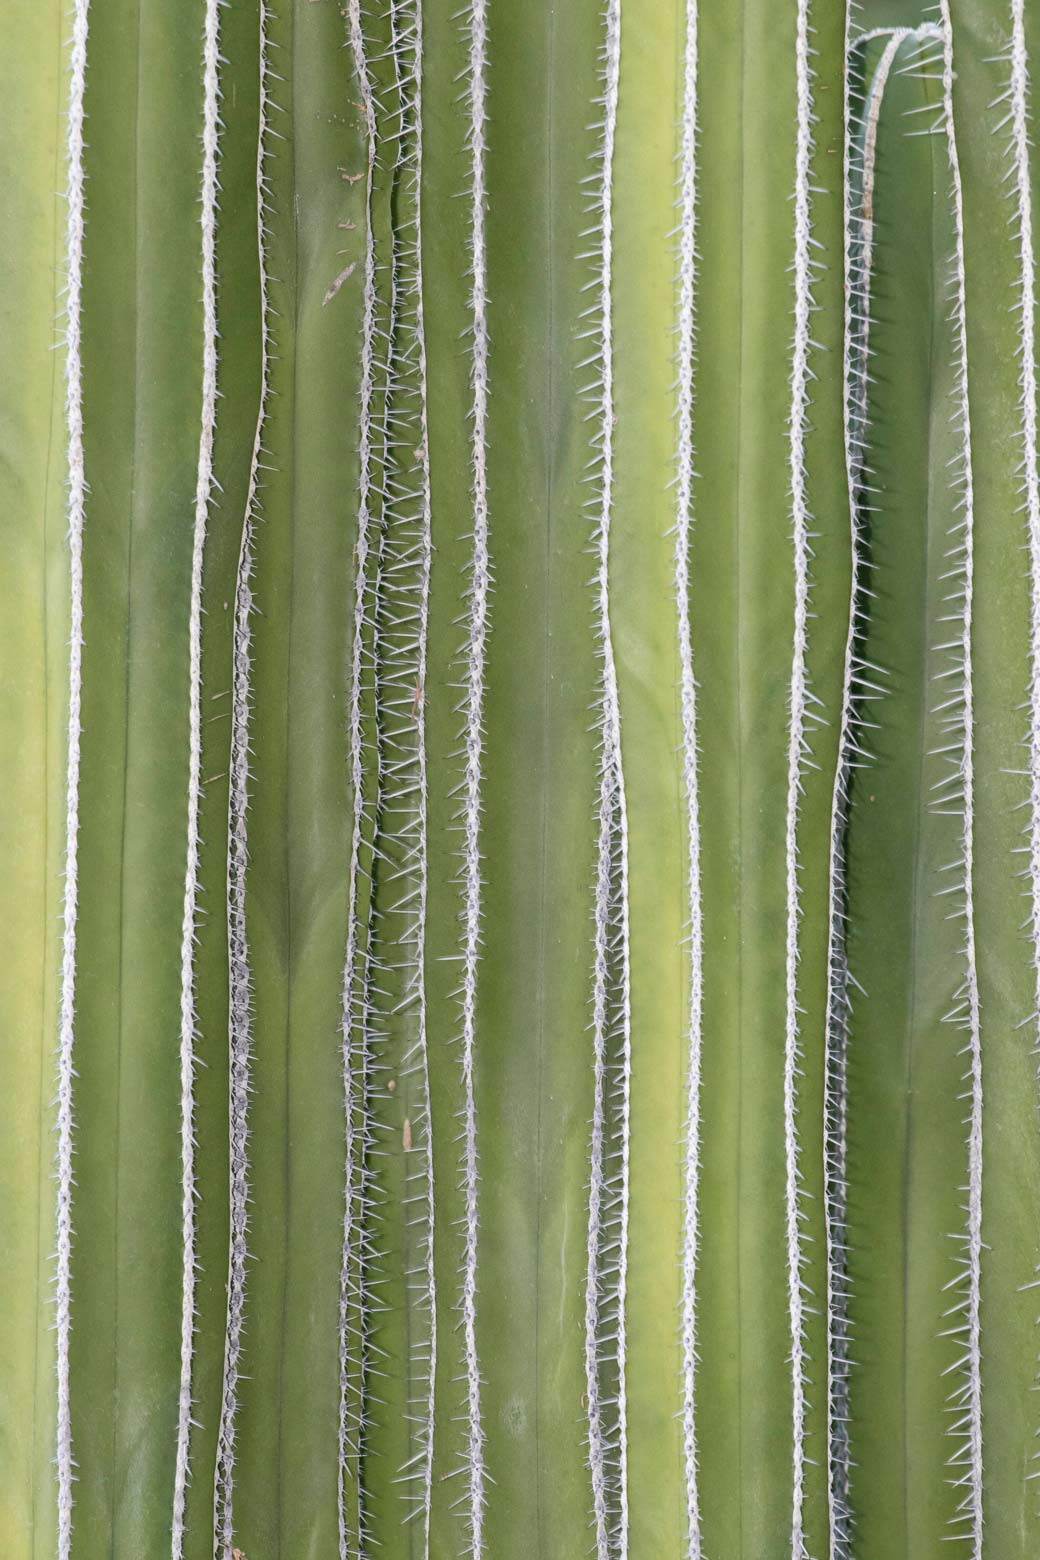 A close-up of the ribs and spines of a Fencepost cactus.